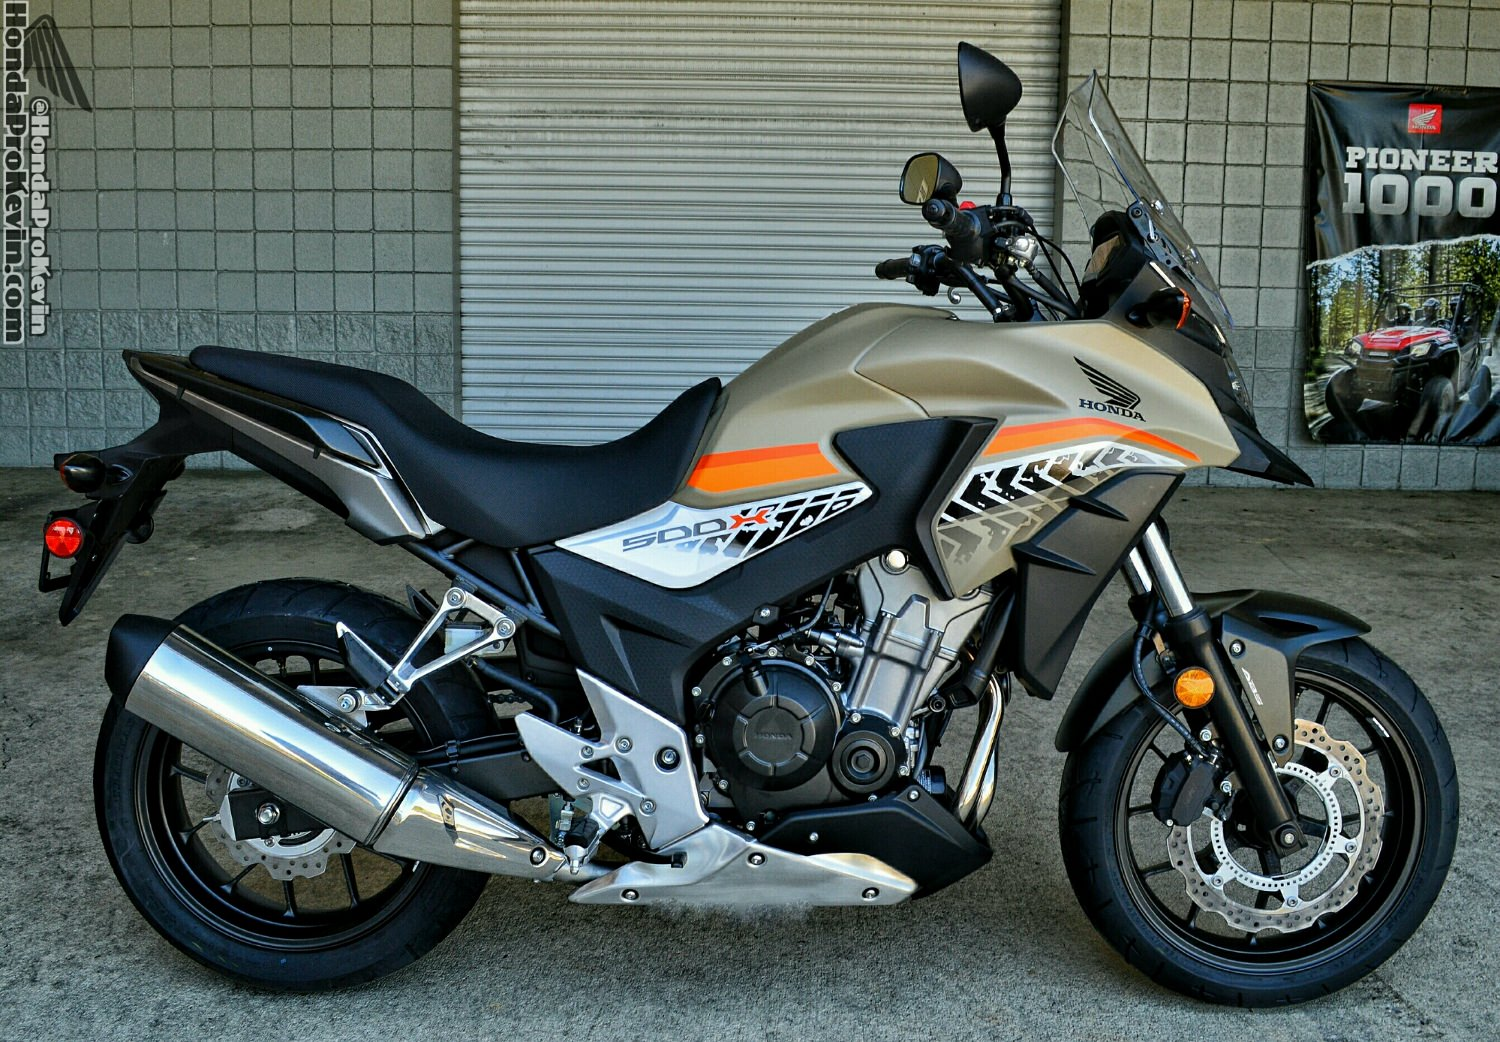 2016 Cb500x Adventure Motorcycle Review Detailed Specs More